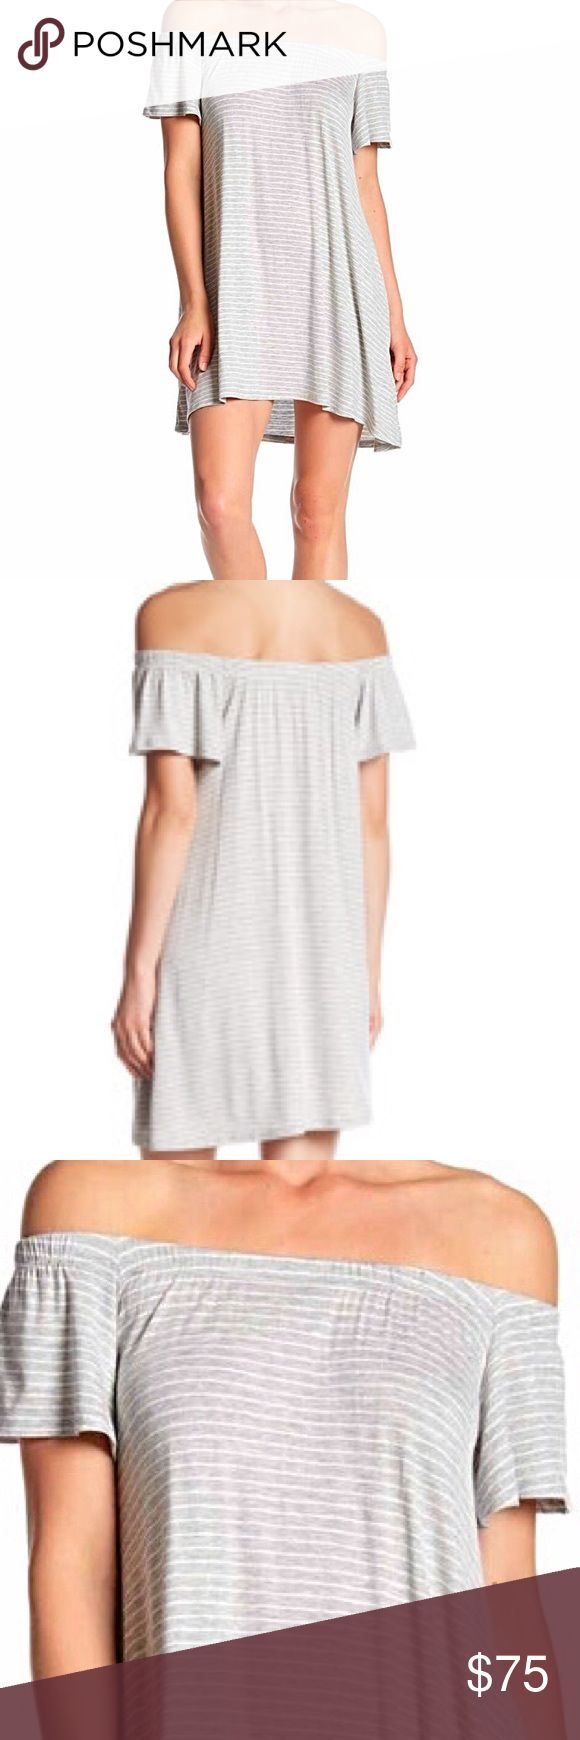 NWT!!! Vanity Room Gray Off The Shoulder Dress Adorable light summertime dress in light gray and white stripes . Dress is NWT Off the shoulders with elastic neck line. Wear to your favorite Festival. Dress it down with flip flops or dress it up with heels. All reasonable offers accepted 🛍🛍🛍 Vanity Room Dresses